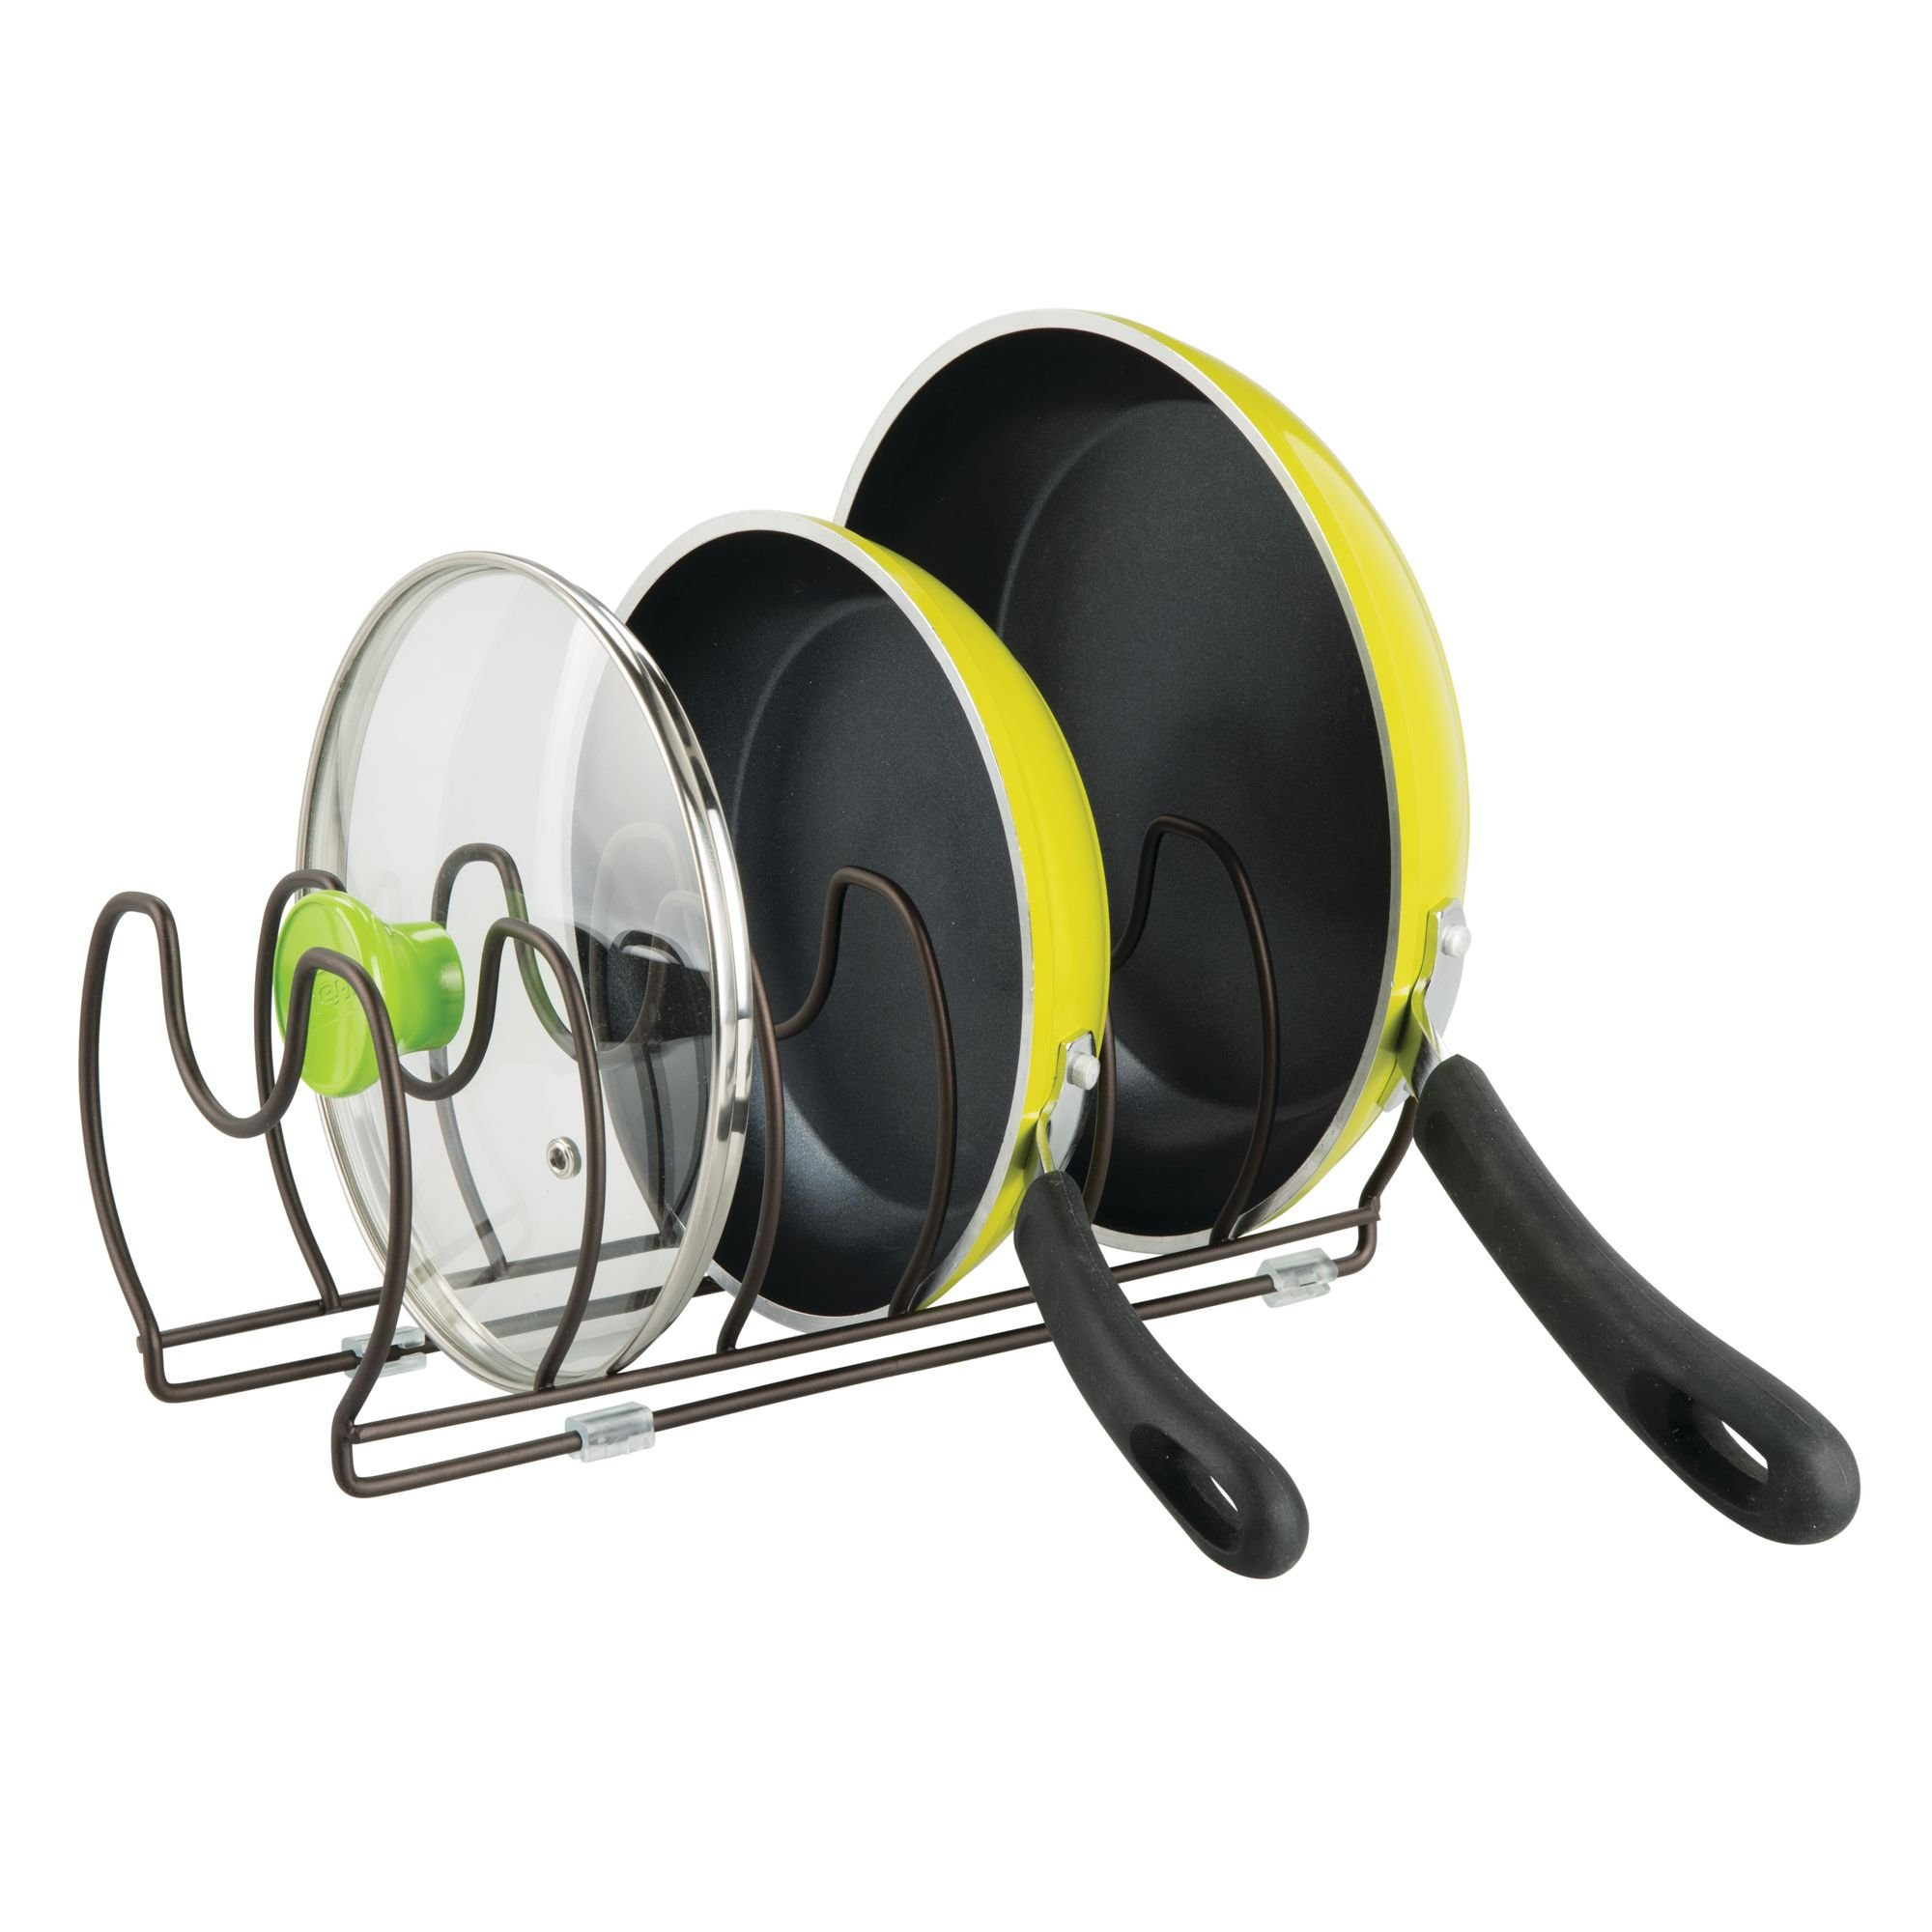 mDesign Pot and Pan Organizer Rack for Kitchen Cabinet, Pantry and Shelves - Organizer Holder with Six Slots for Skillets, Frying Pans, Lids, Vertical or Horizontal Placement - Steel Wire, Bronze